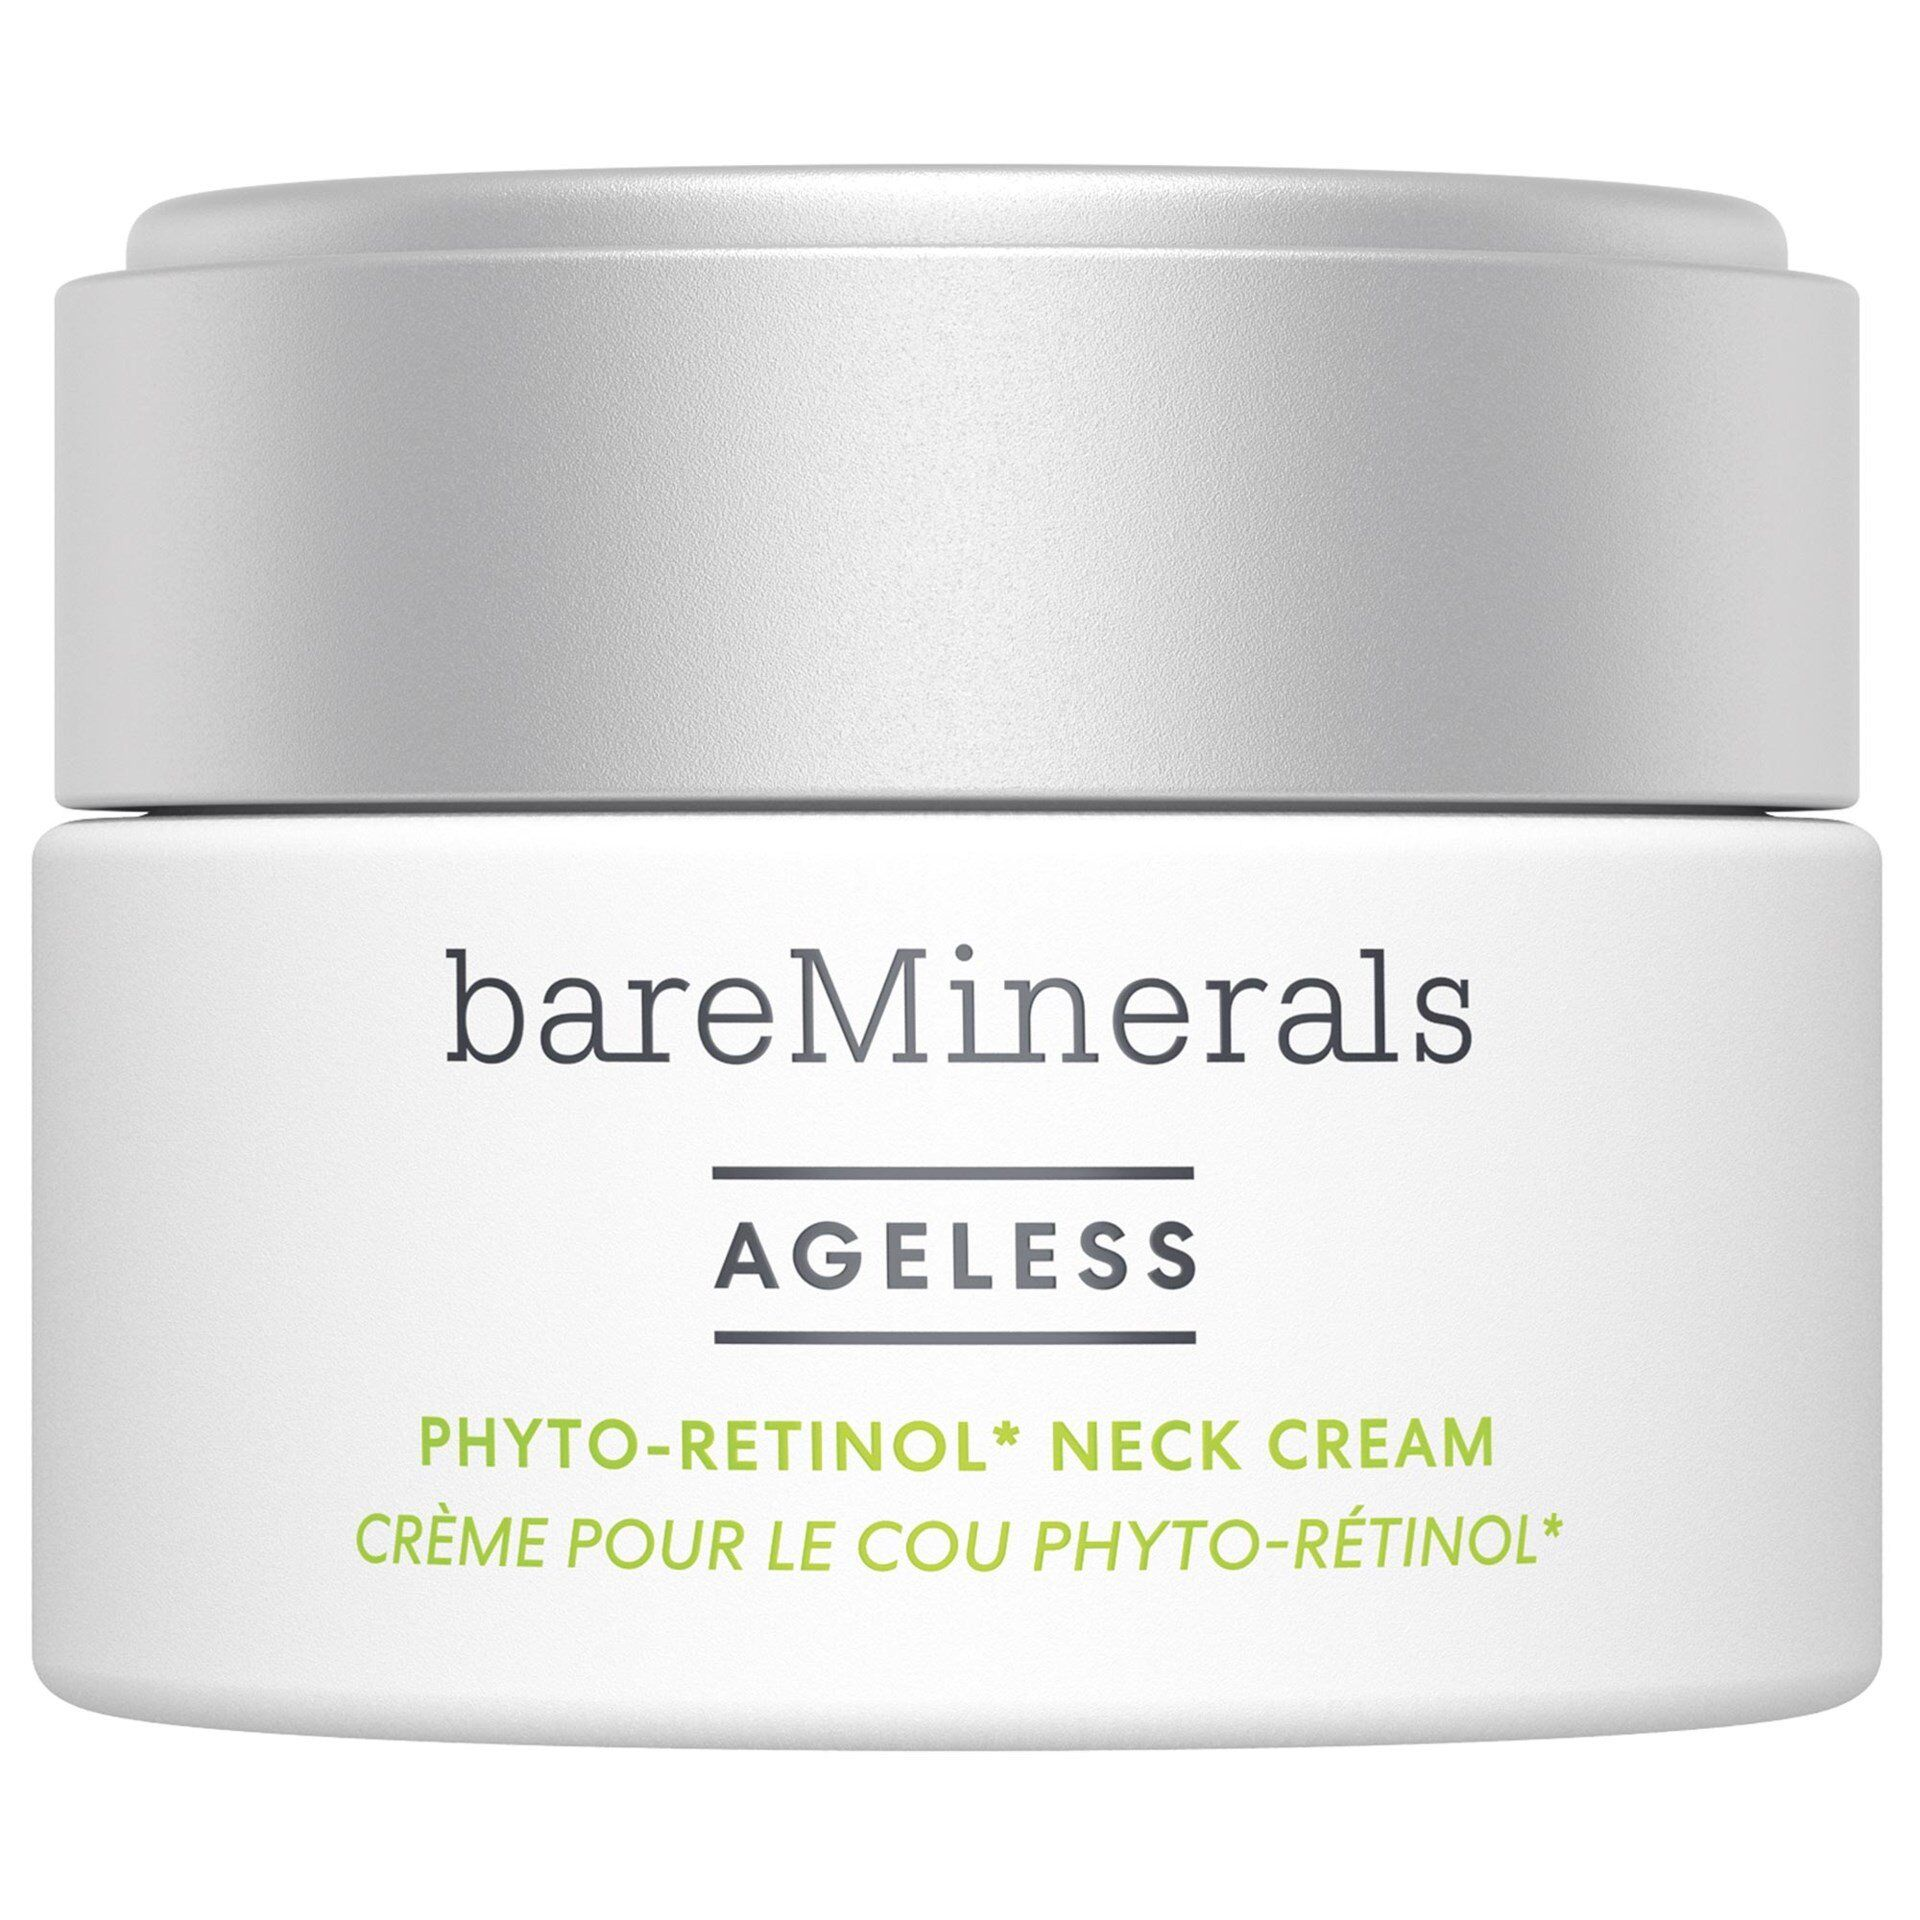 ageless-phyto-retinol-neck-cream